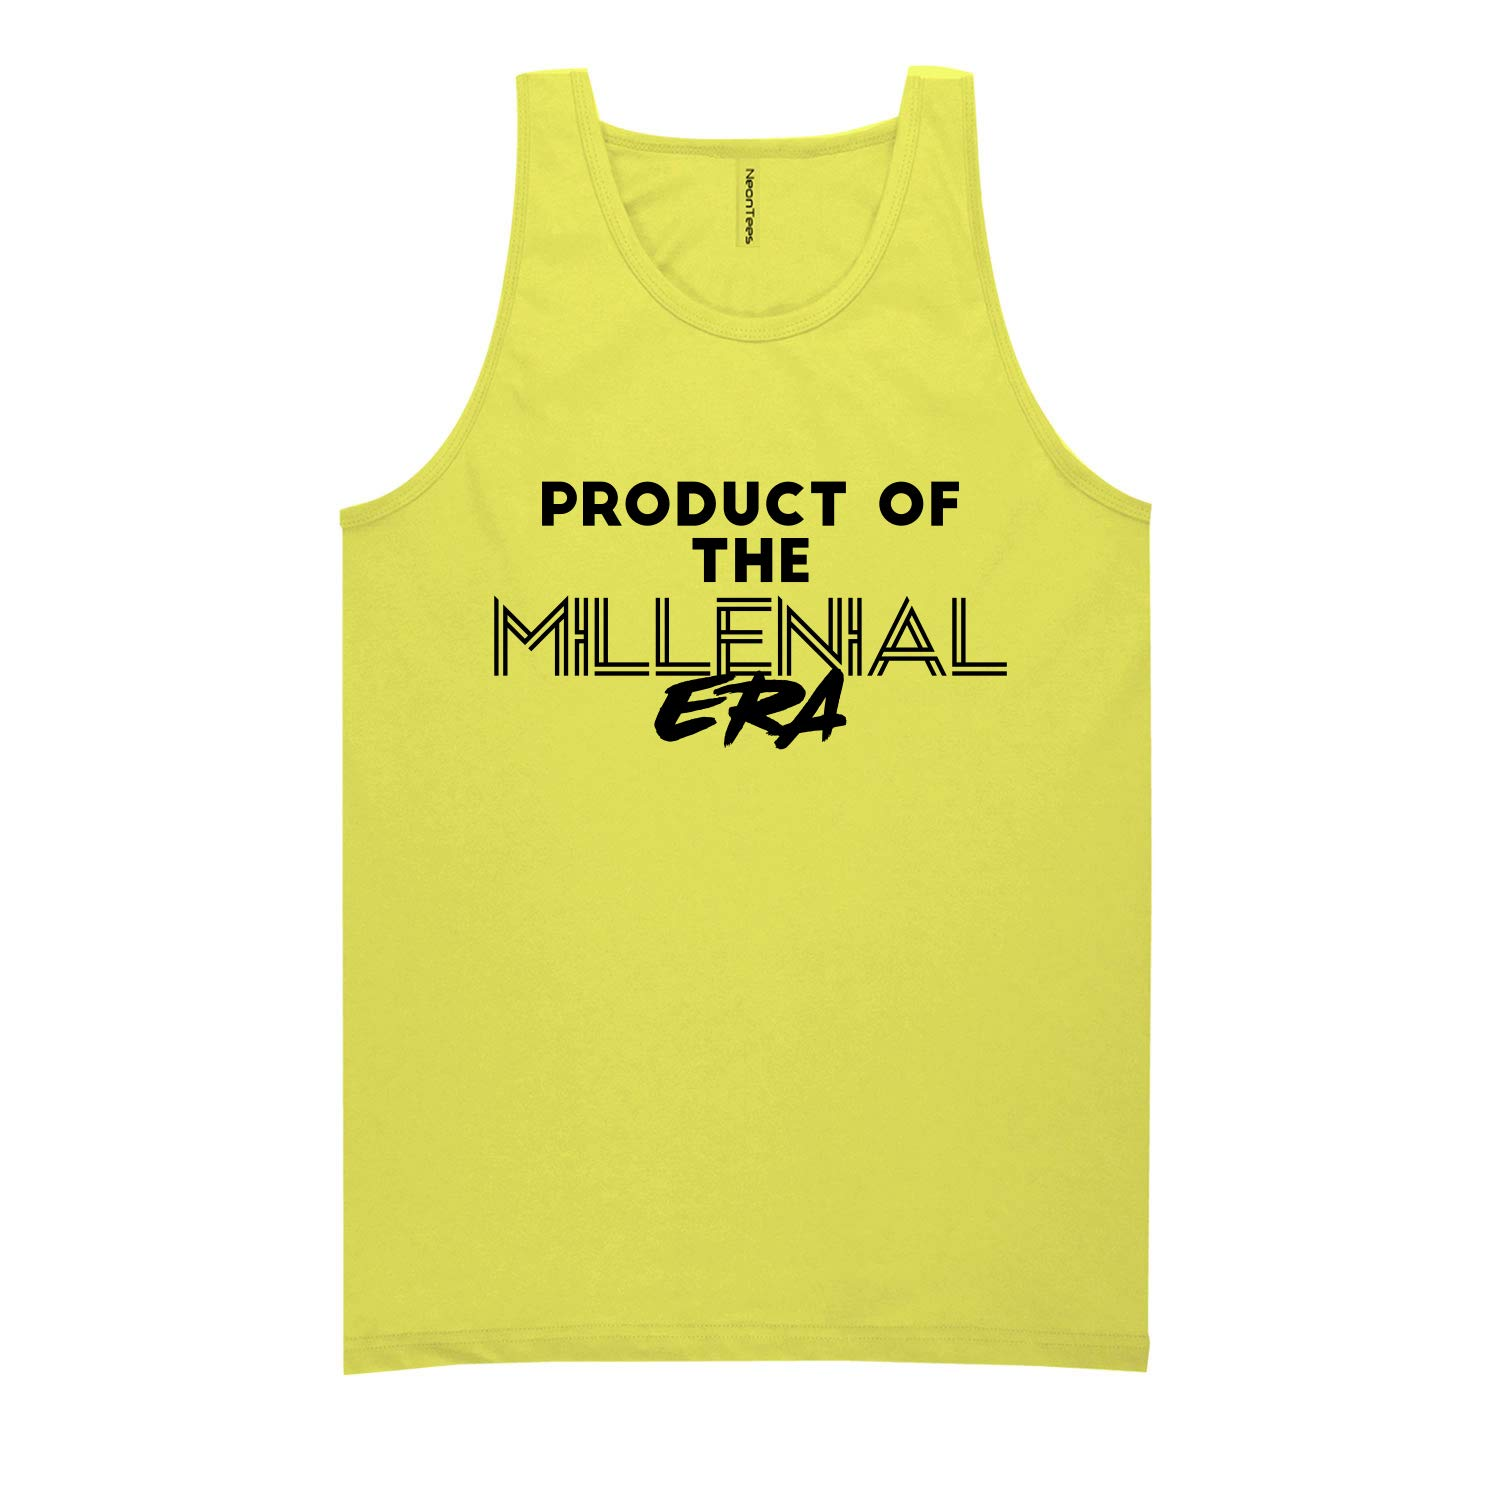 Product of The Millenial ERA Neon Tank Top